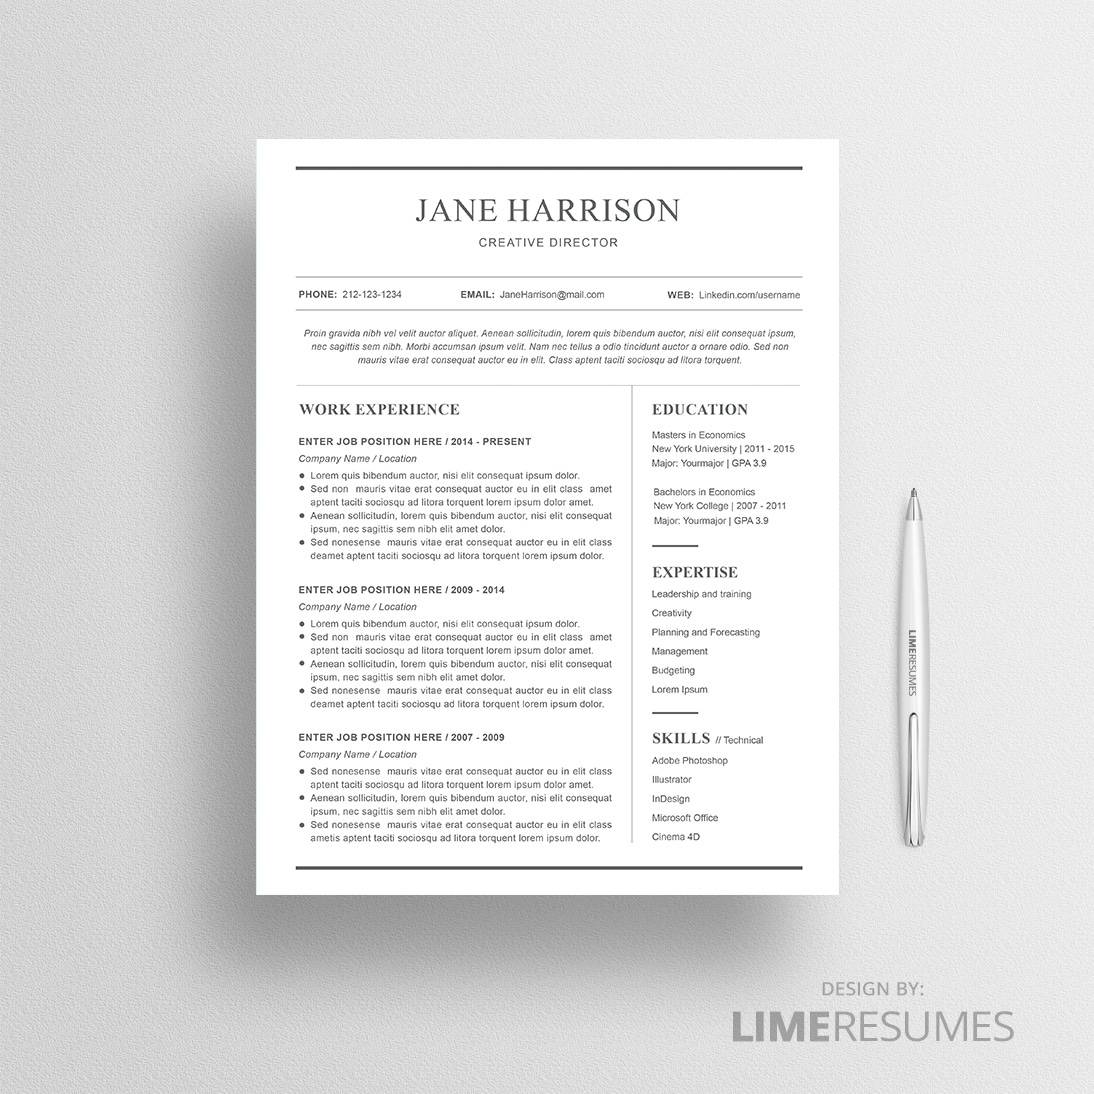 Buy Resume Templates   Premium Professional Resume Templates   LimeResumes  Professional Resume Templates Microsoft Word